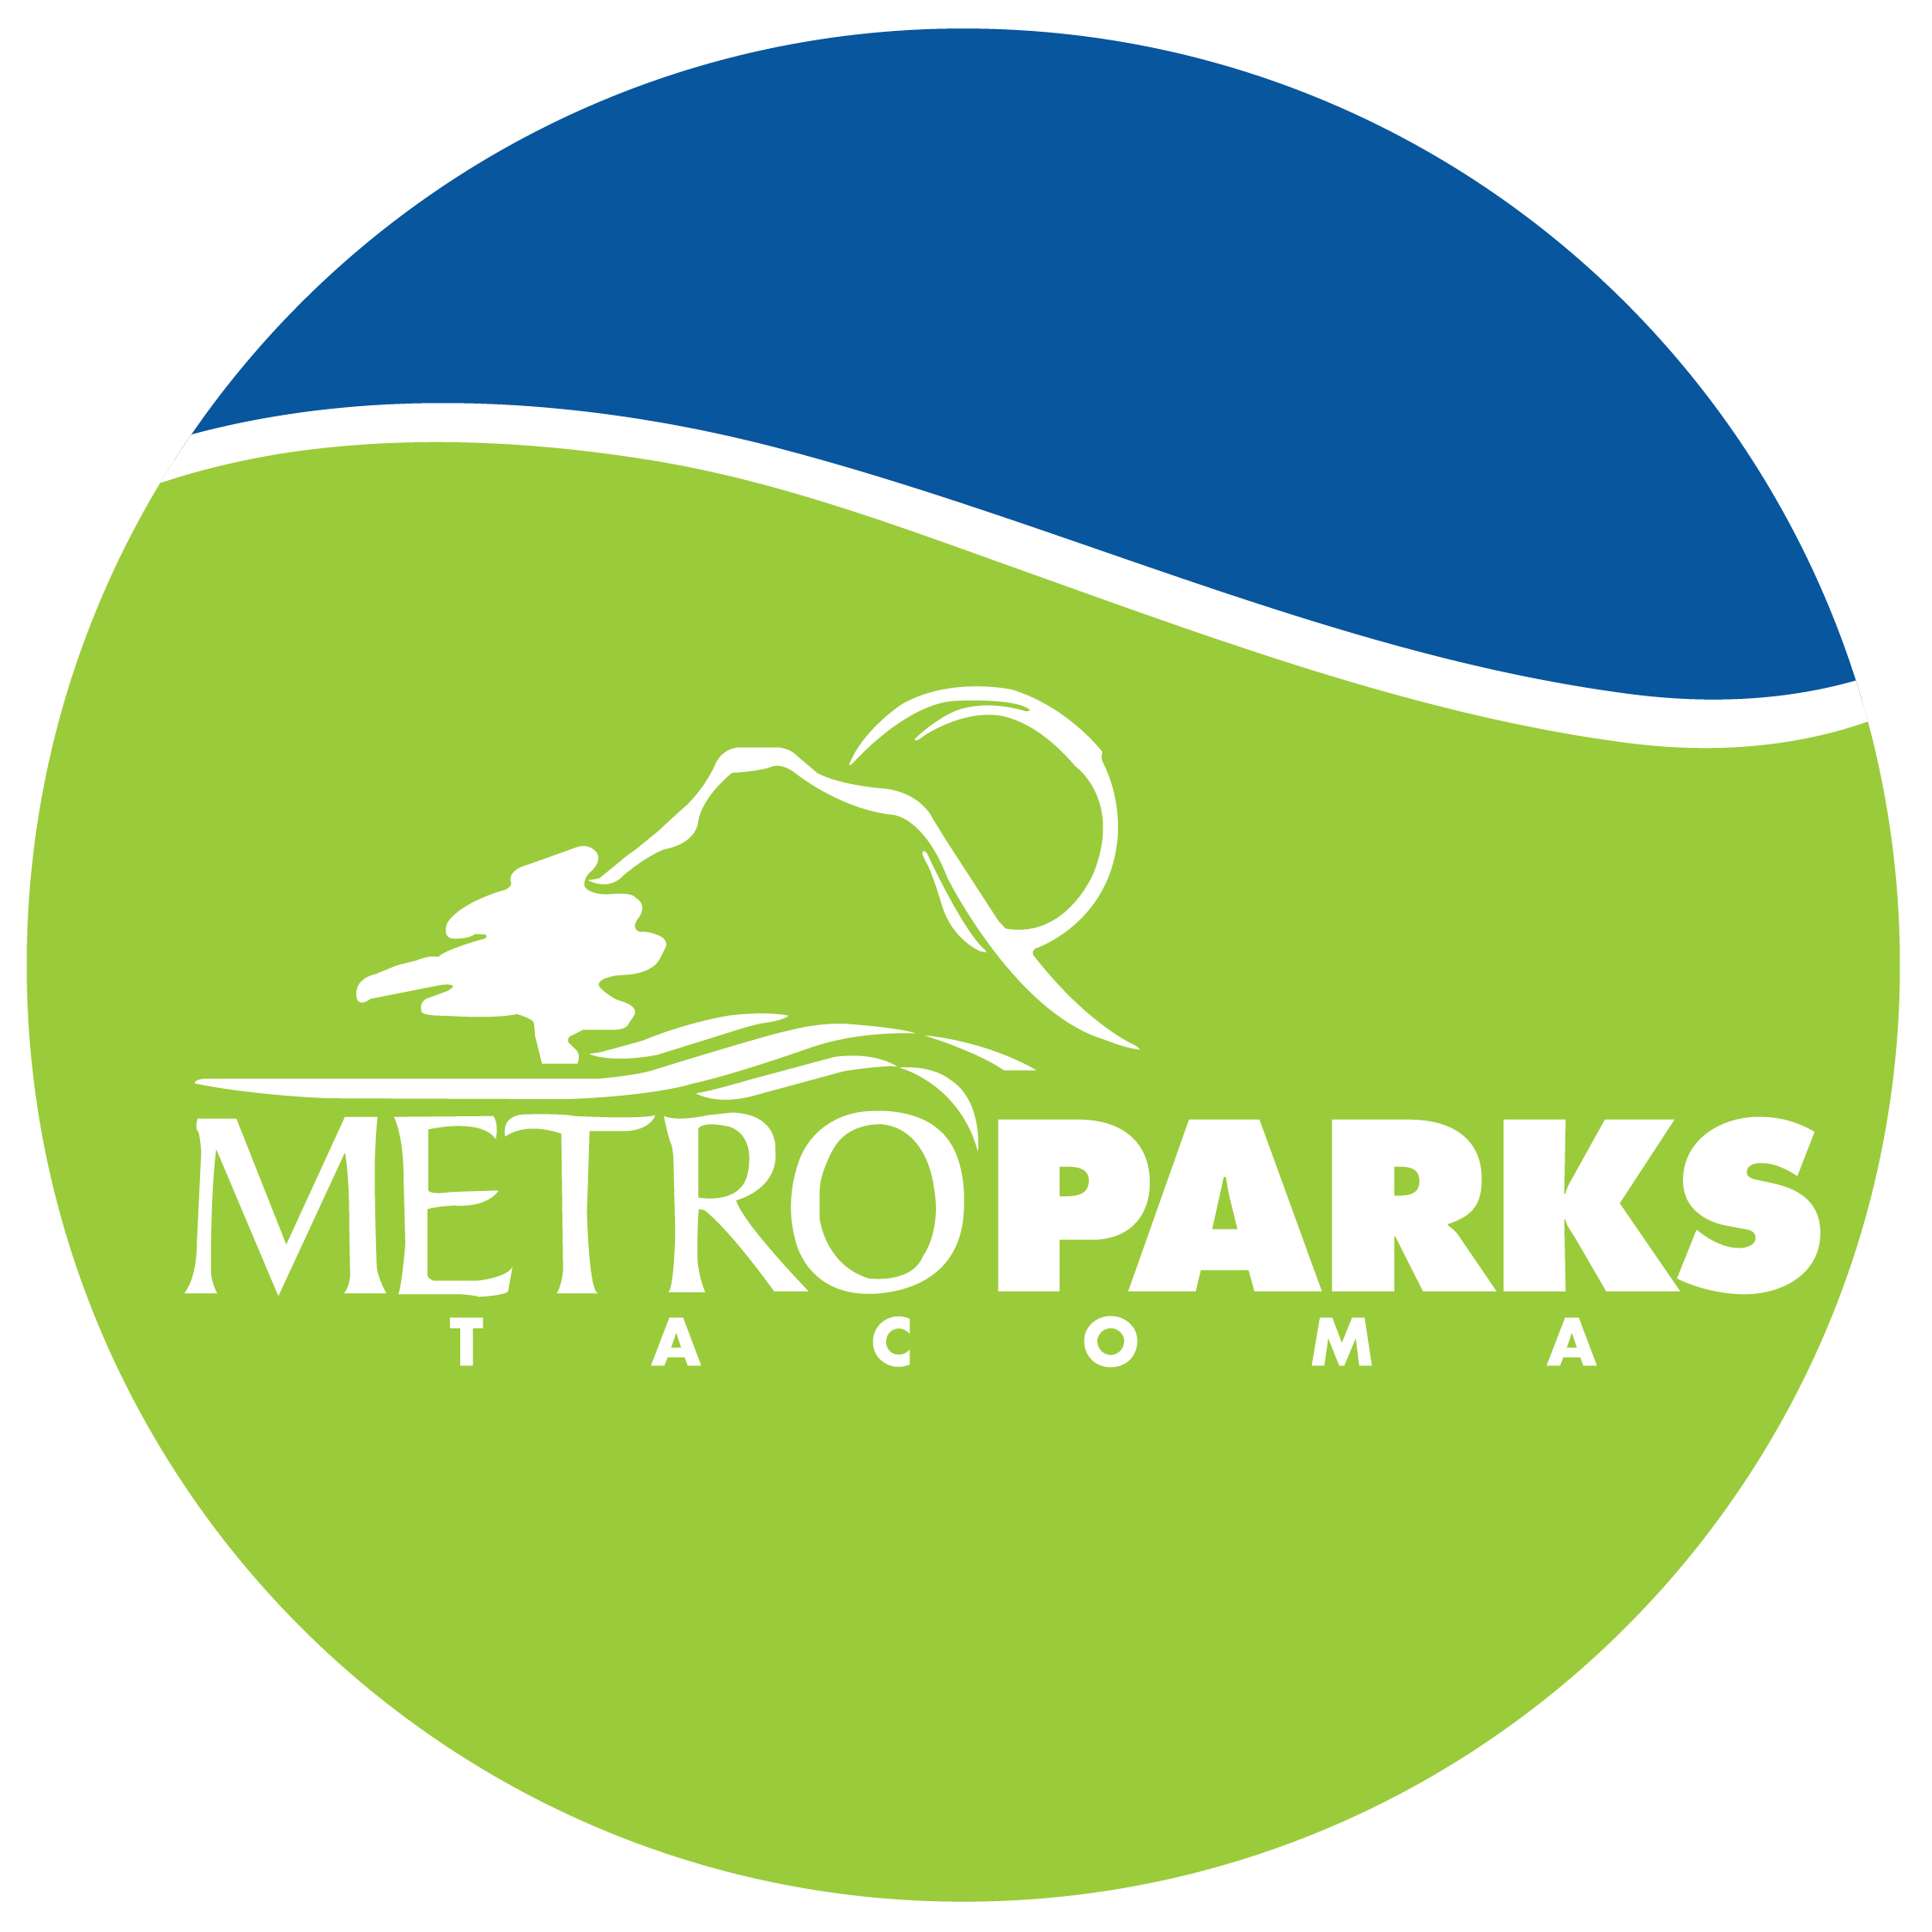 Metro Parks Tacoma Job and Internship Opportunities | Sorted